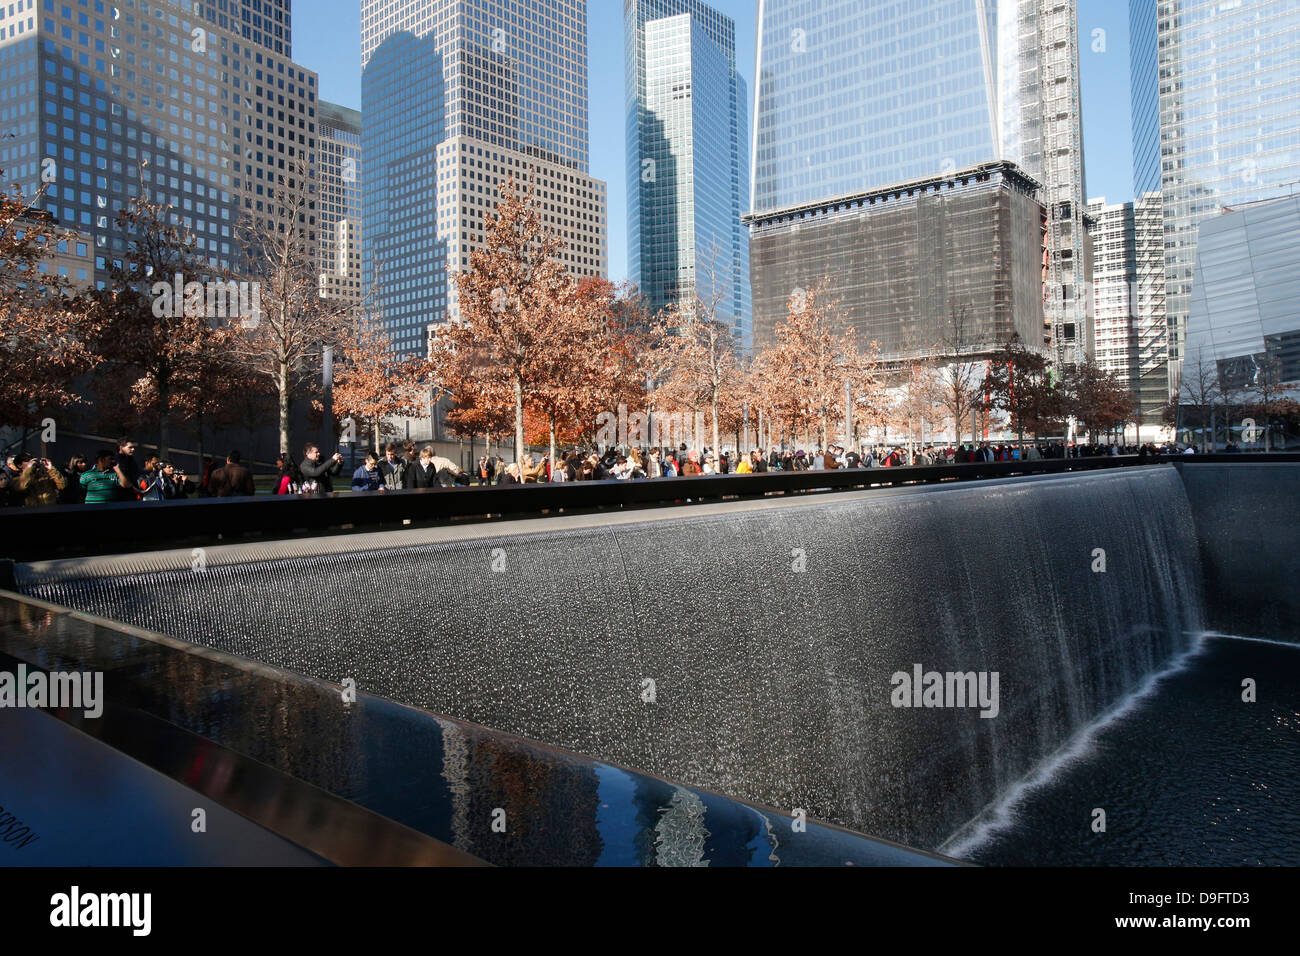 Ground Zero, the National 9/11 Memorial at the site of the World Trade Center in Lower Manhattan, New York, USA Stock Photo